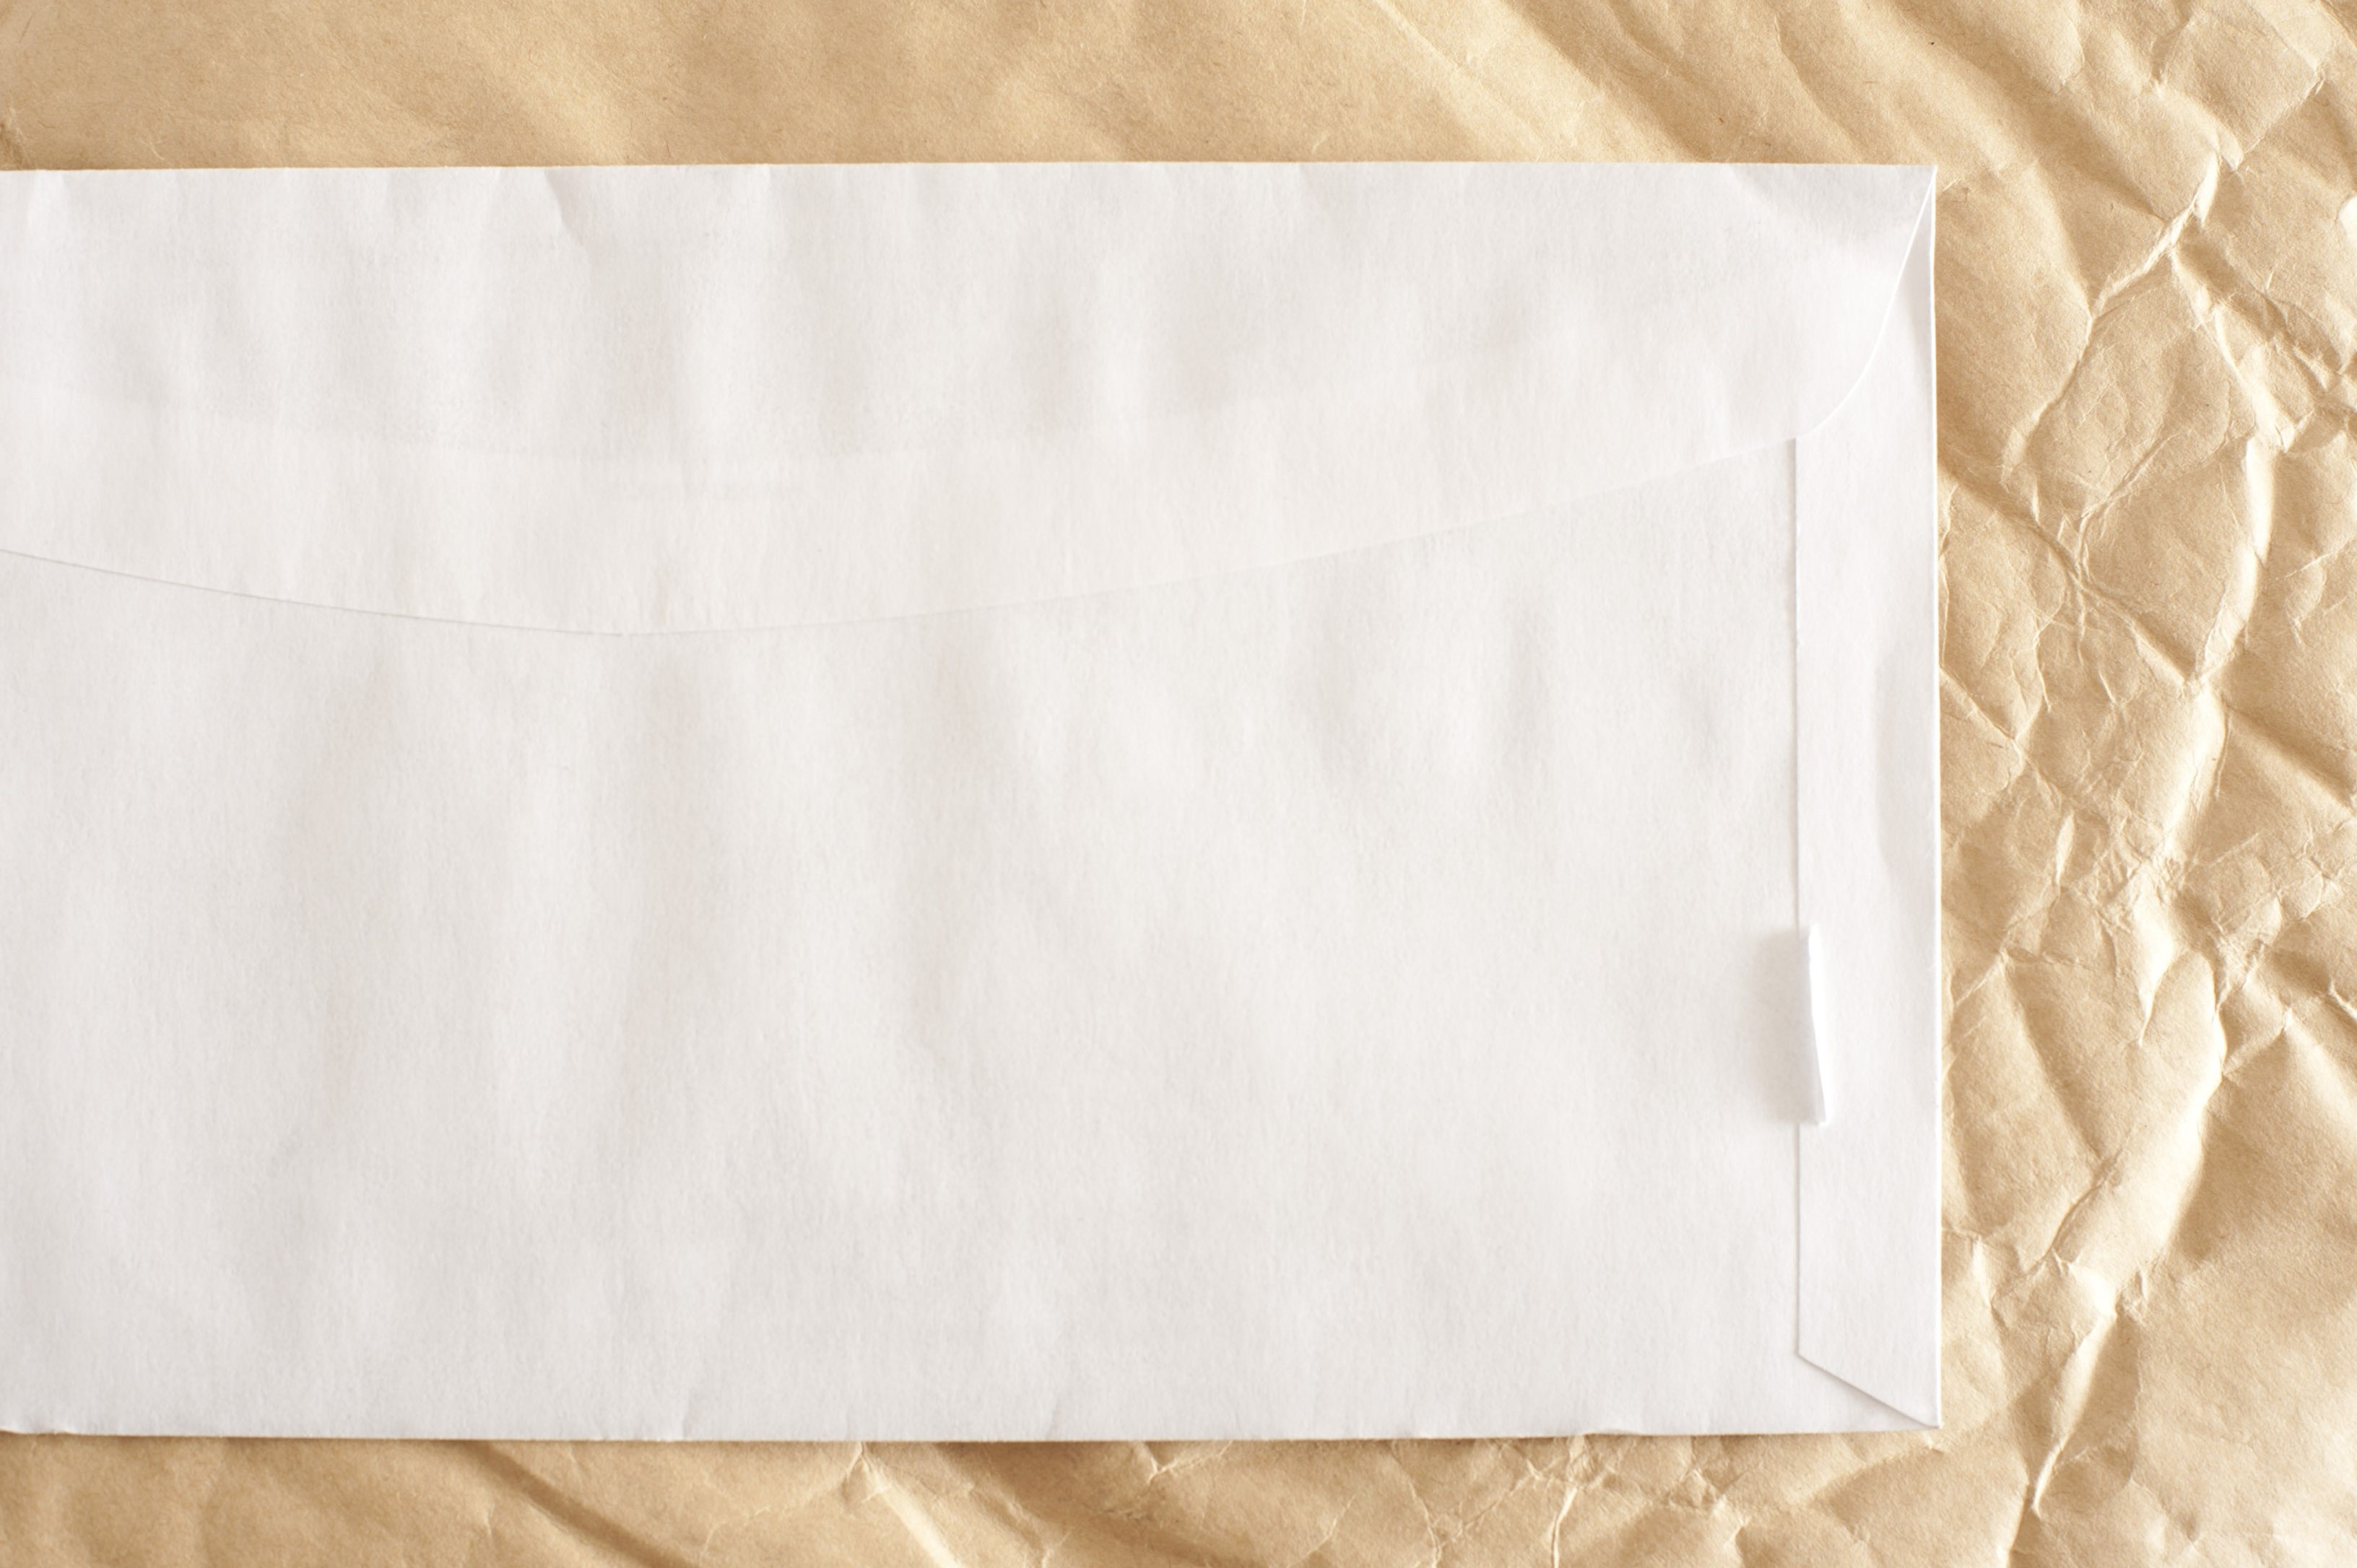 close up image of an envelope with space for text surrounded with crumpled paper